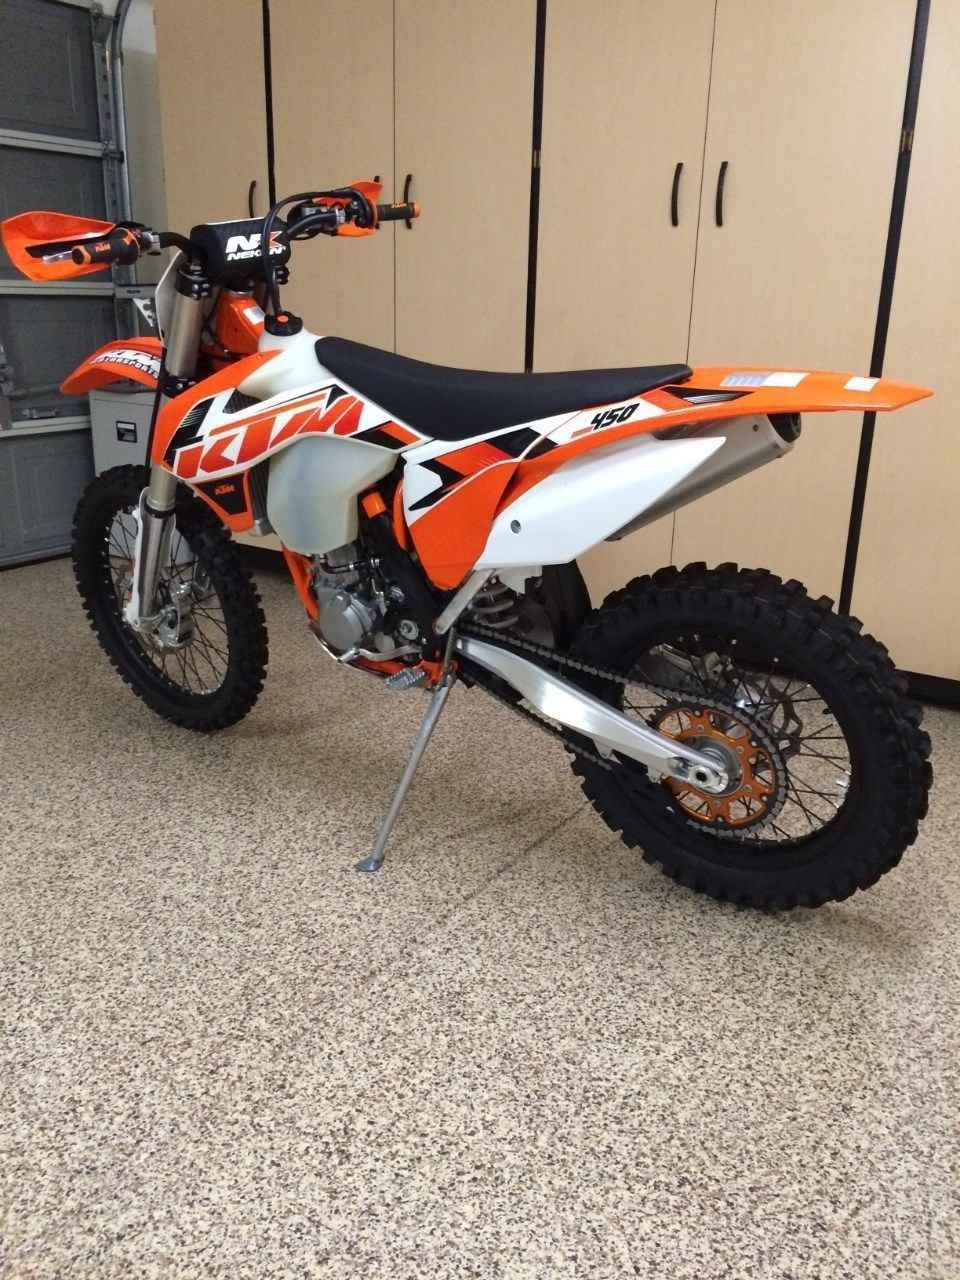 2015 KTM XCF Ktm, Motorcycles for sale, Motorcycle